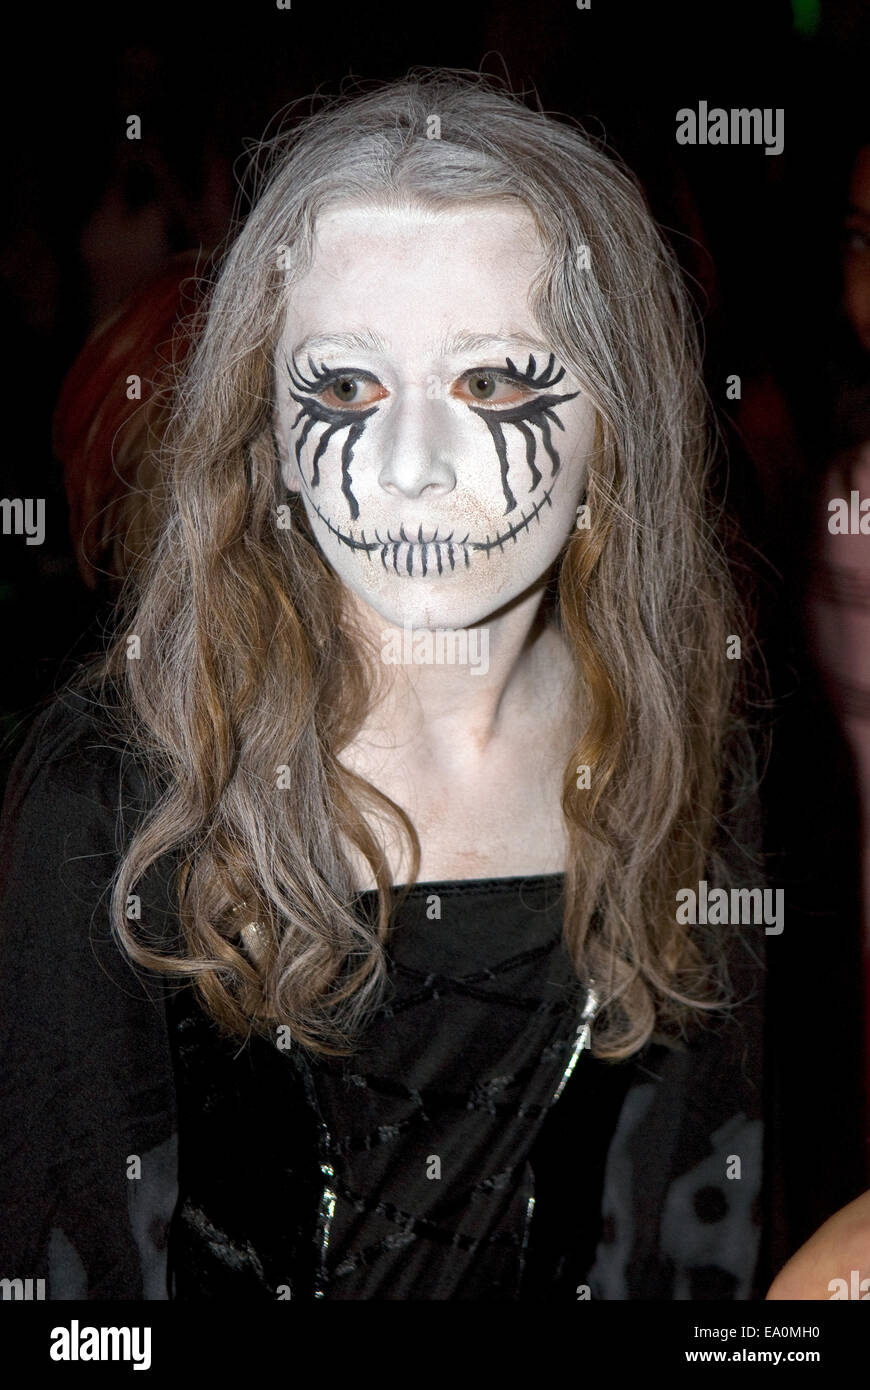 scary girls face paint stock photos & scary girls face paint stock